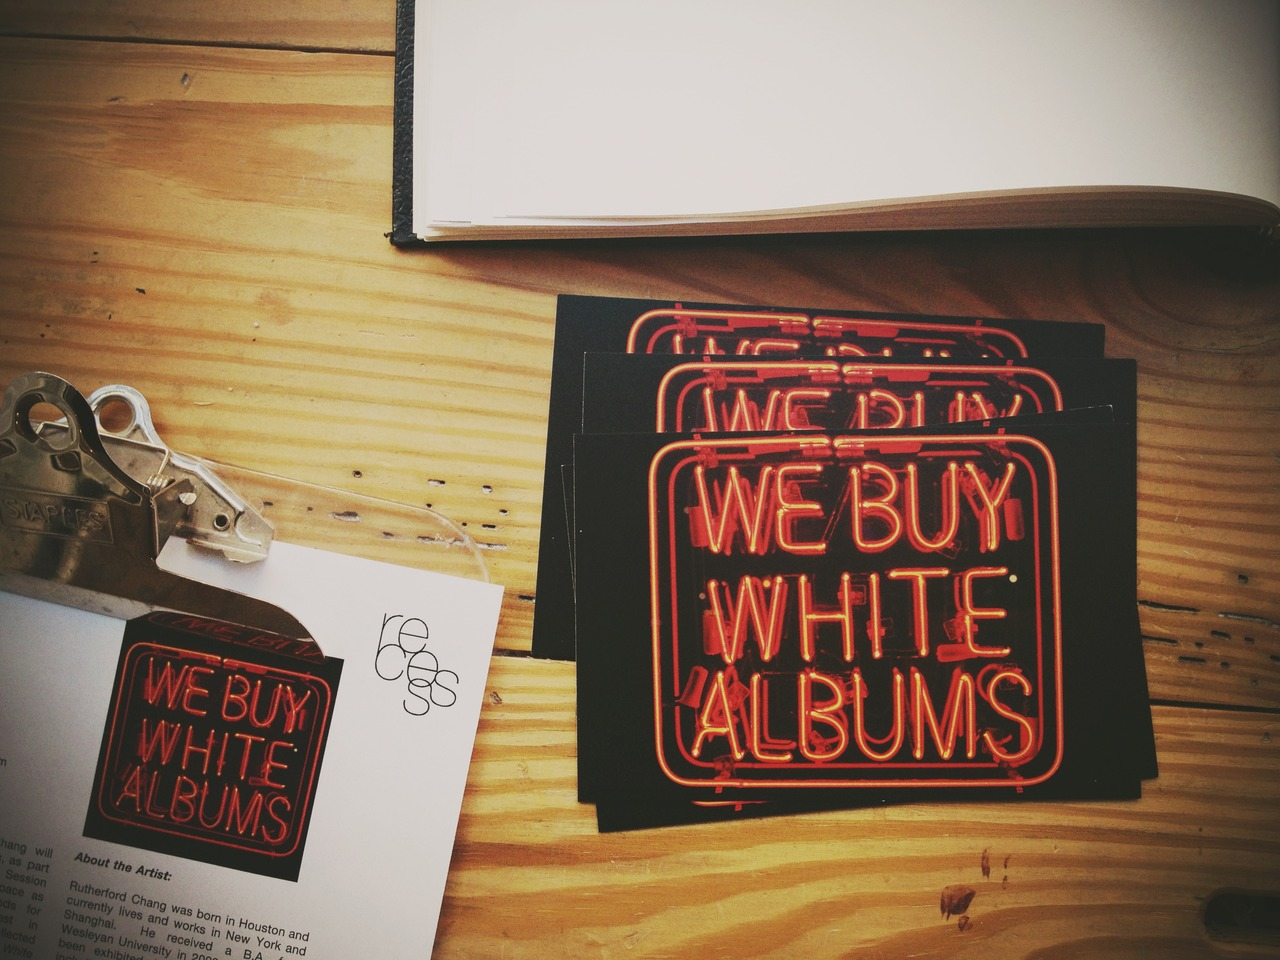 We Buy White Albums #peppersearching #pepper #photos #art #Beatles #flyer